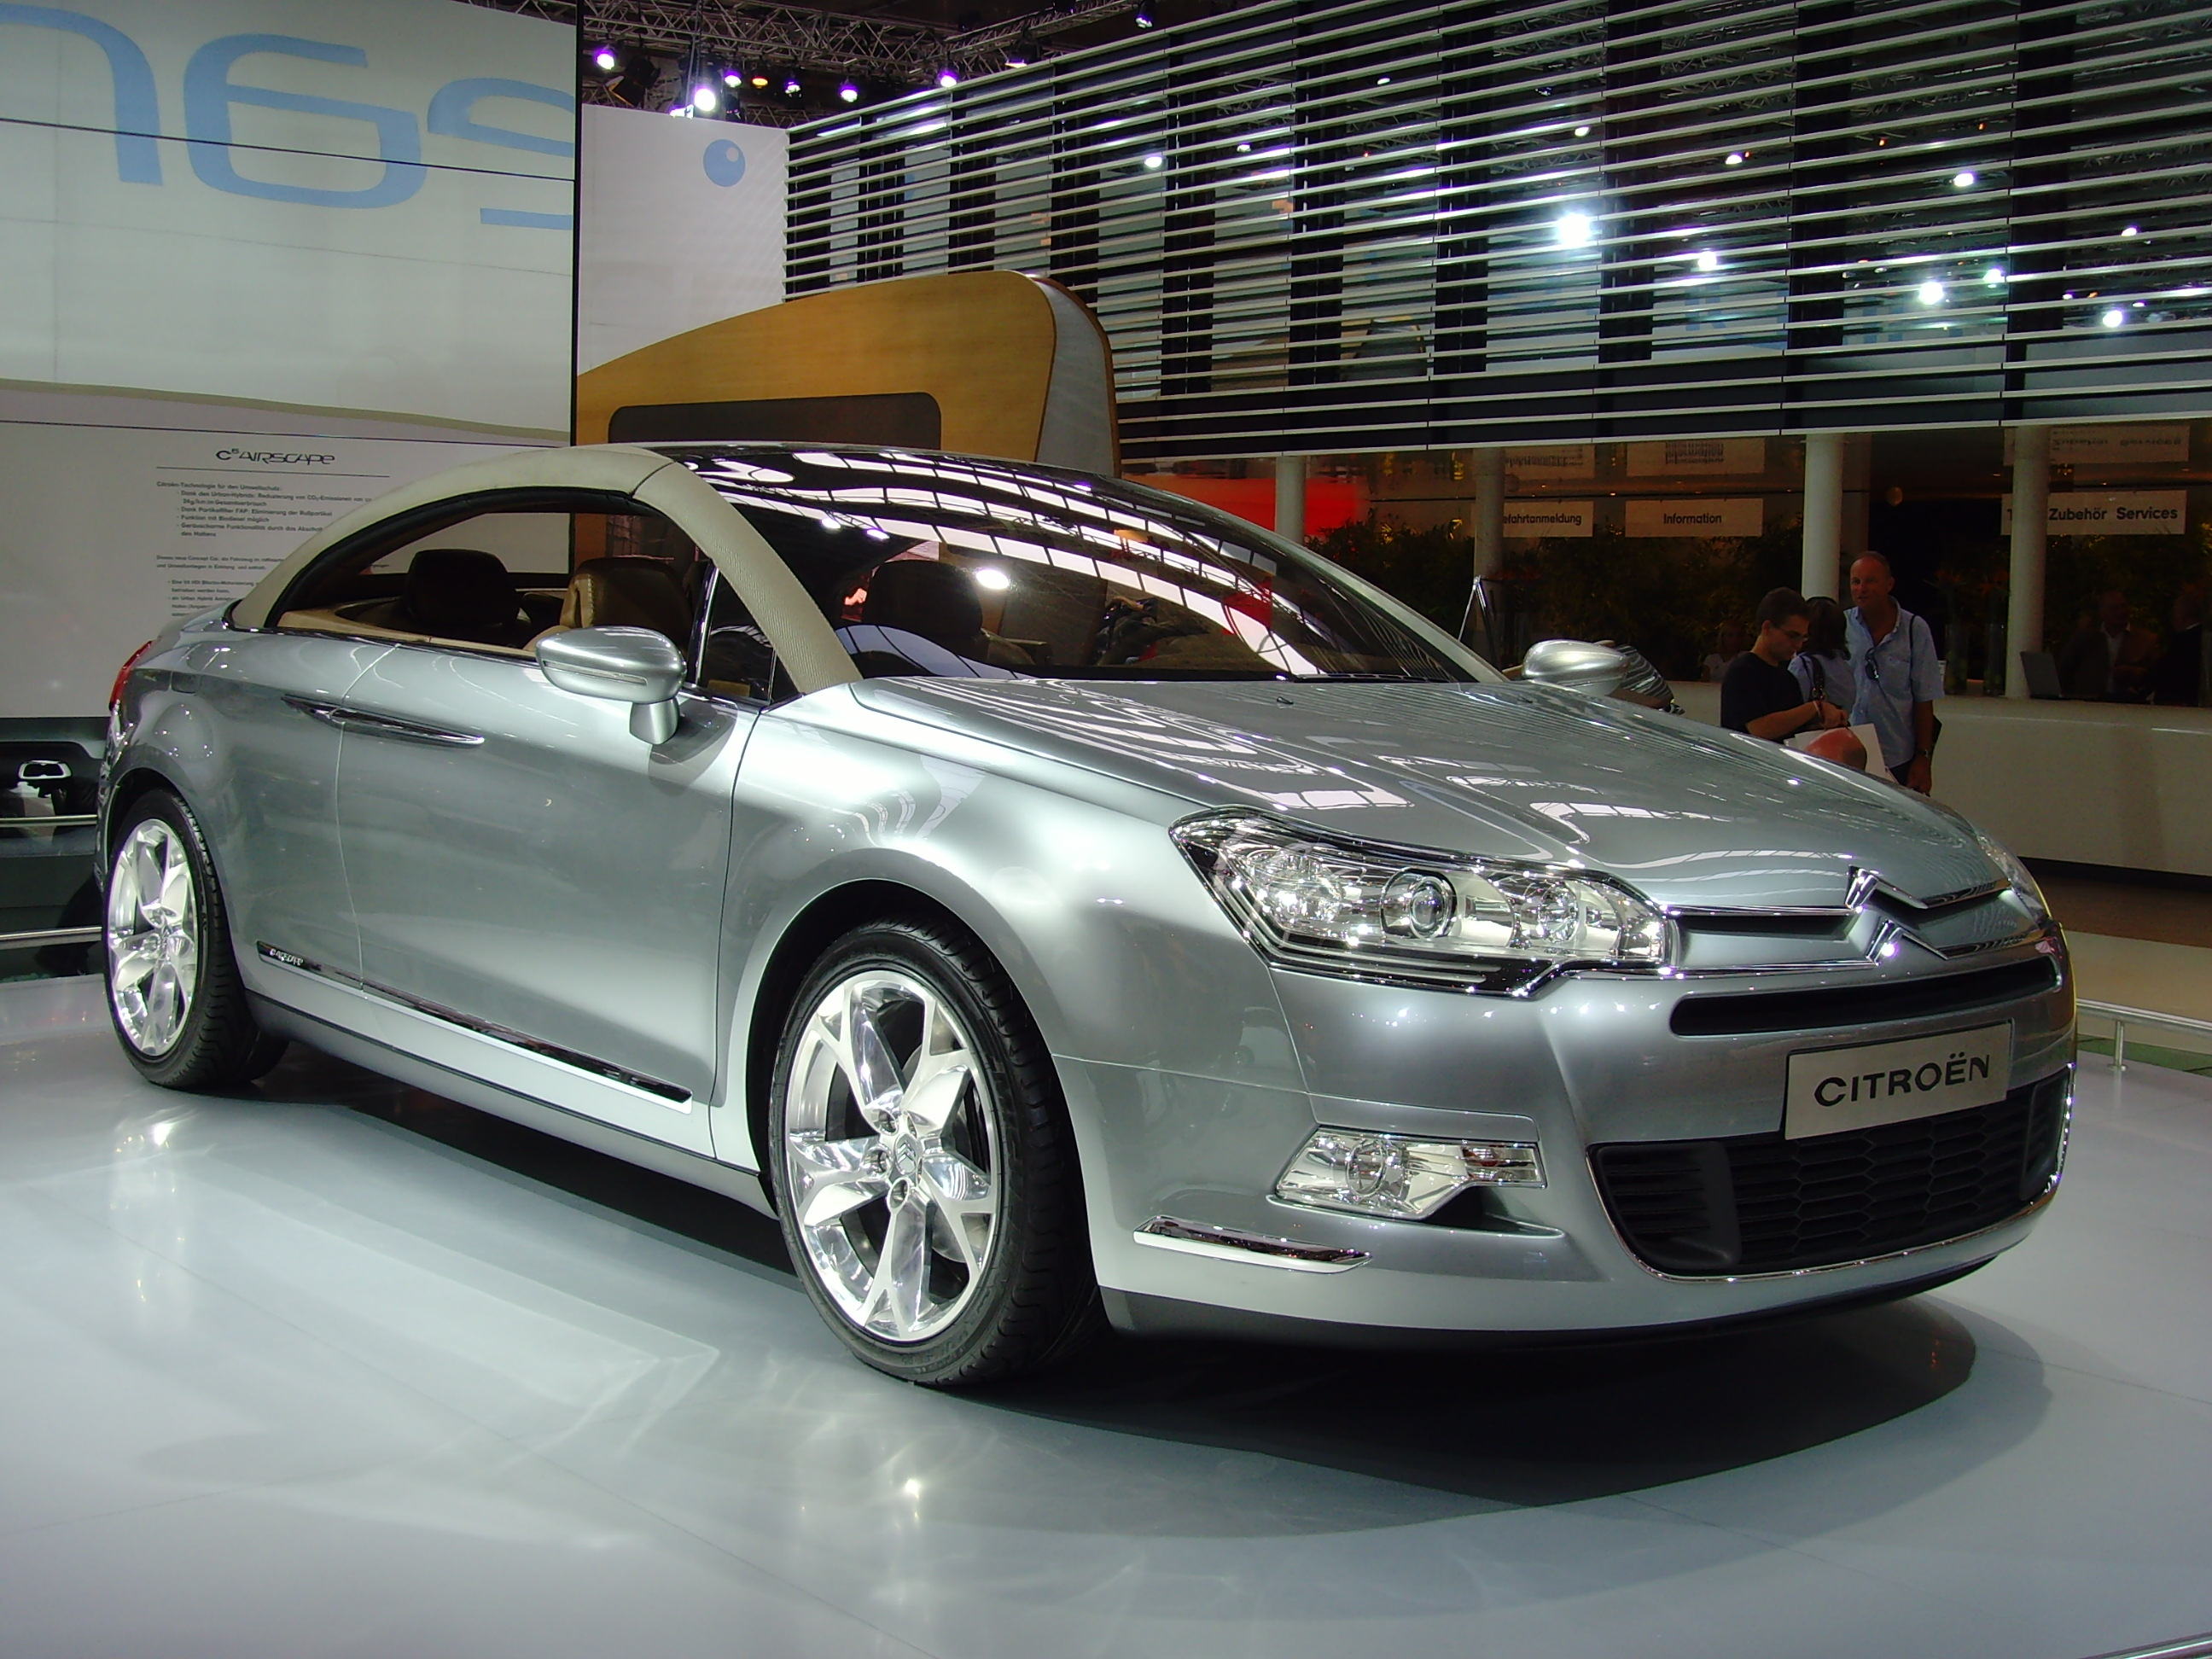 file citroen c5 airscape iaa 2007 wikimedia commons. Black Bedroom Furniture Sets. Home Design Ideas